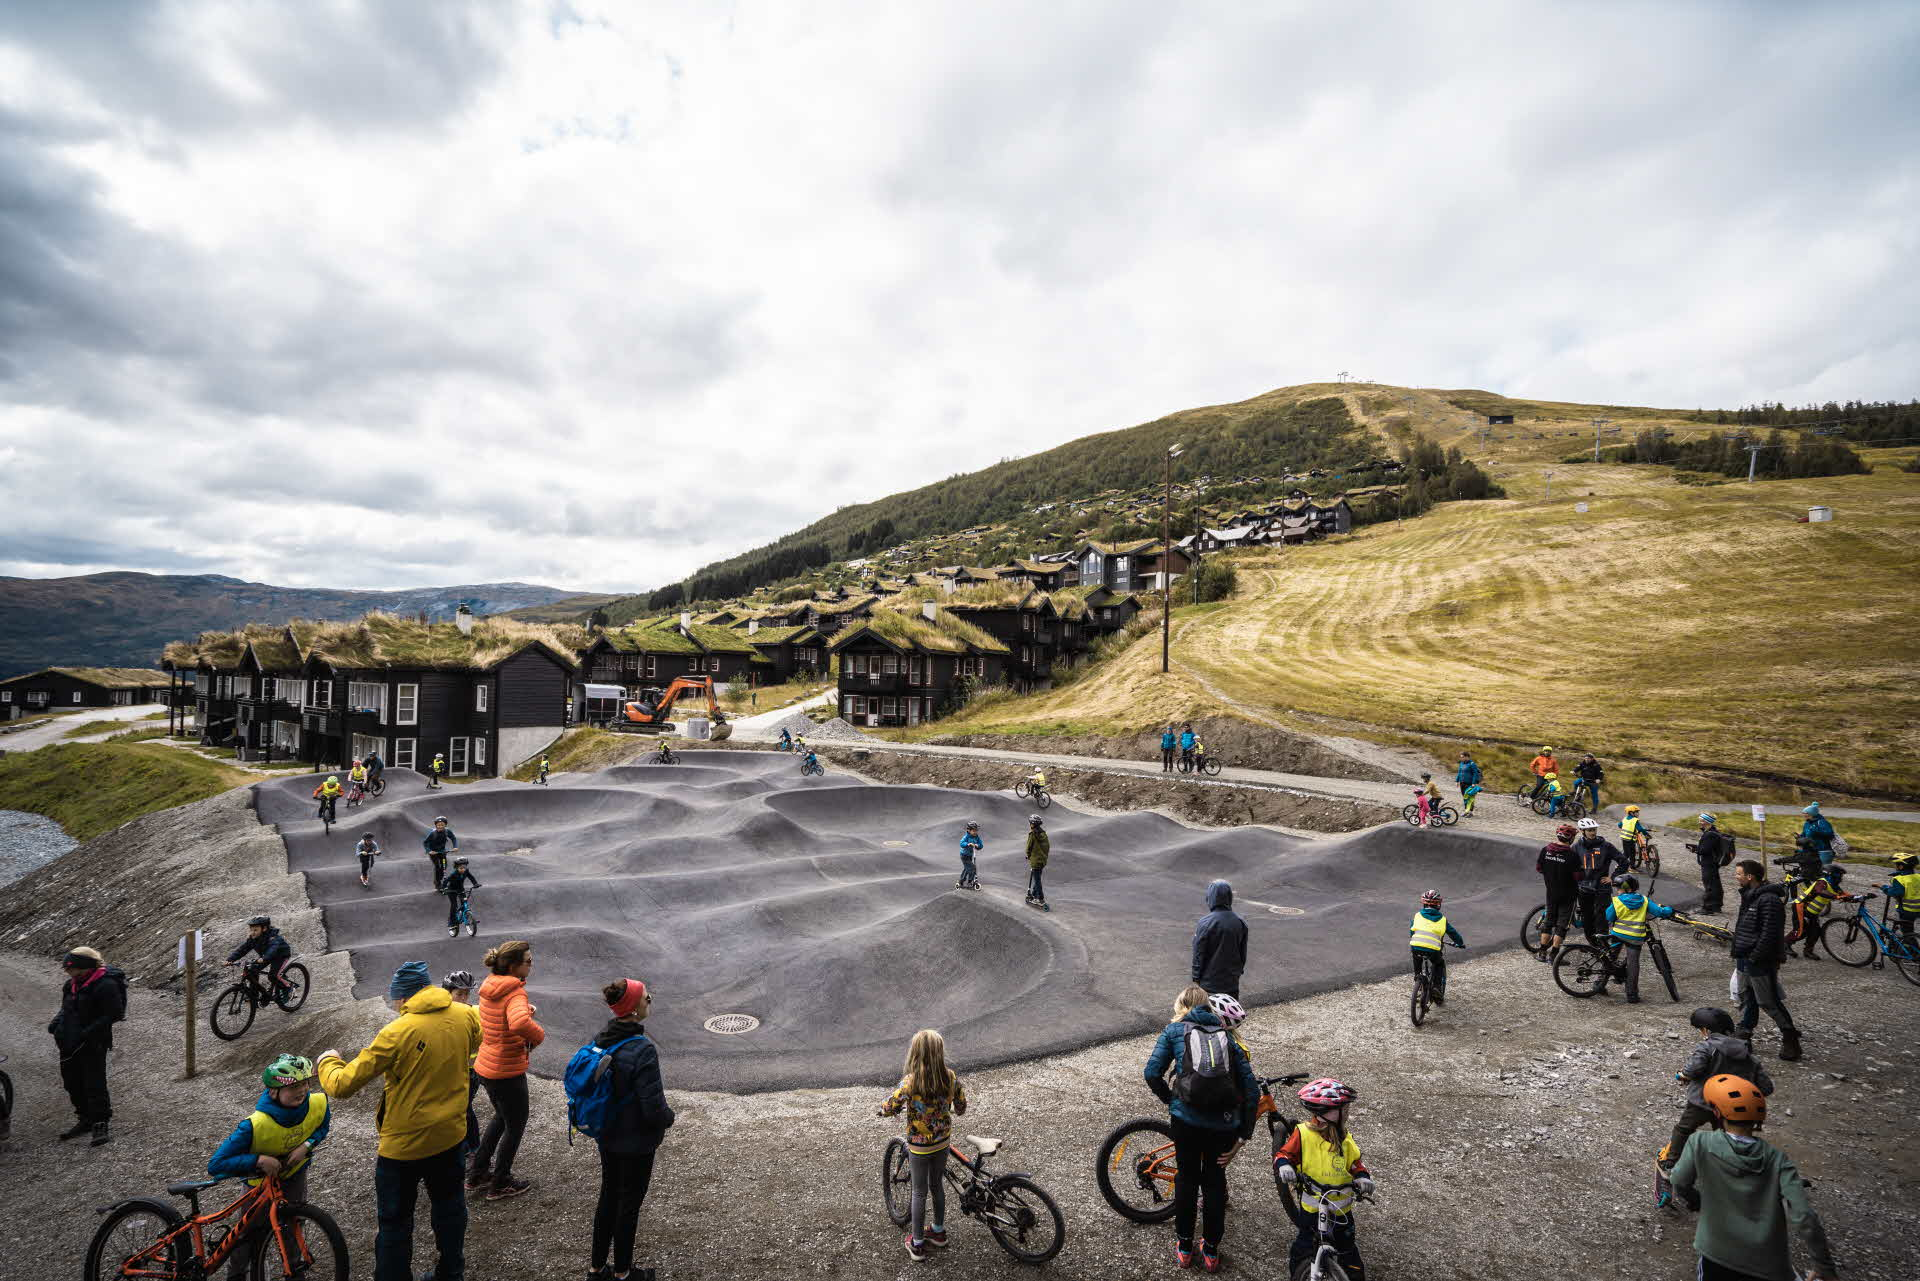 Children and adults standing round and cycling on a pumptrack in Myrkdalen Fjellandsby